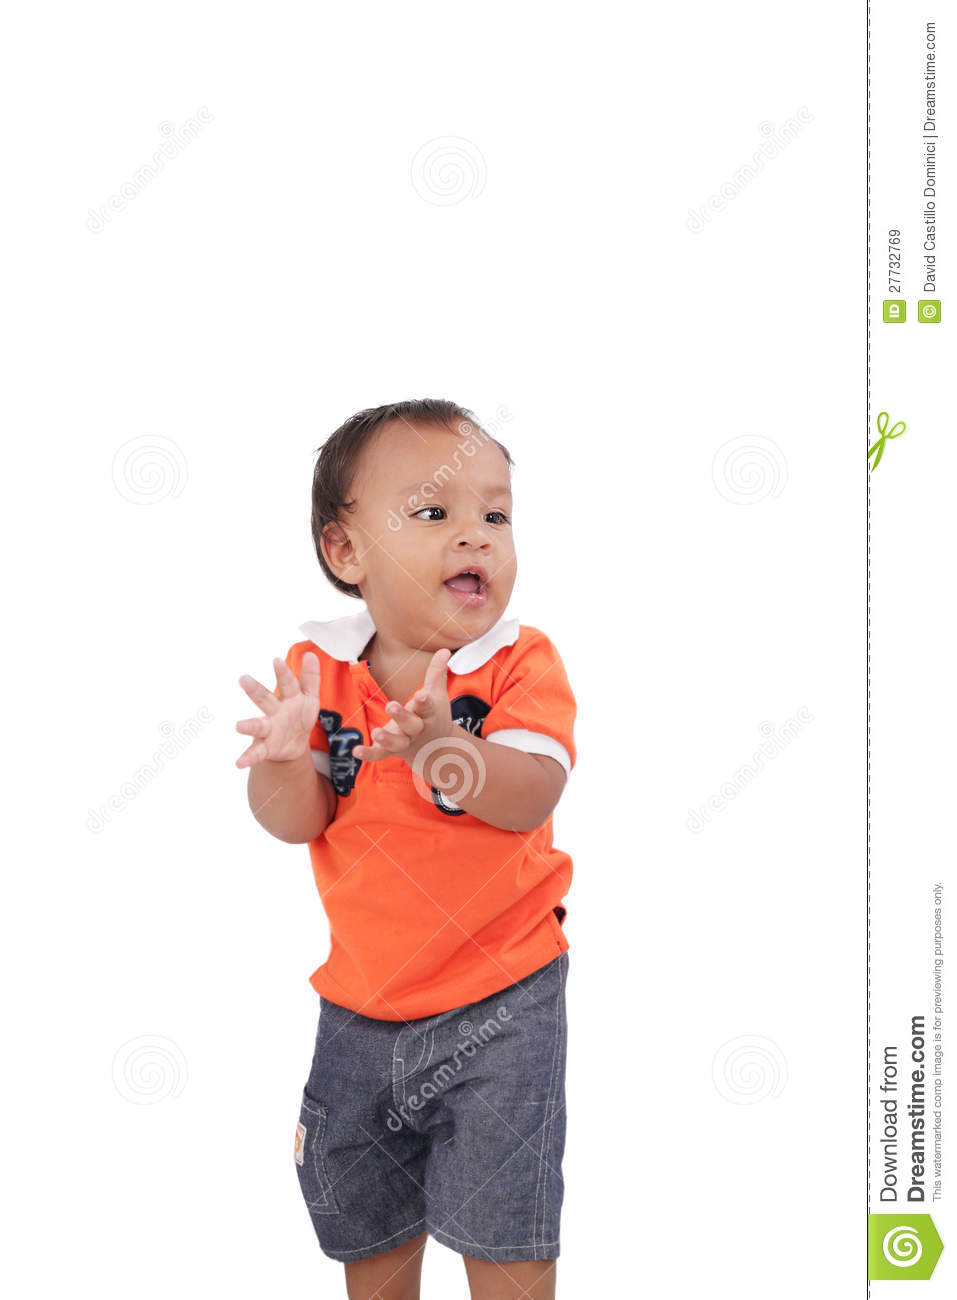 Happy One Year Old Baby Boy Royalty Free Stock Images